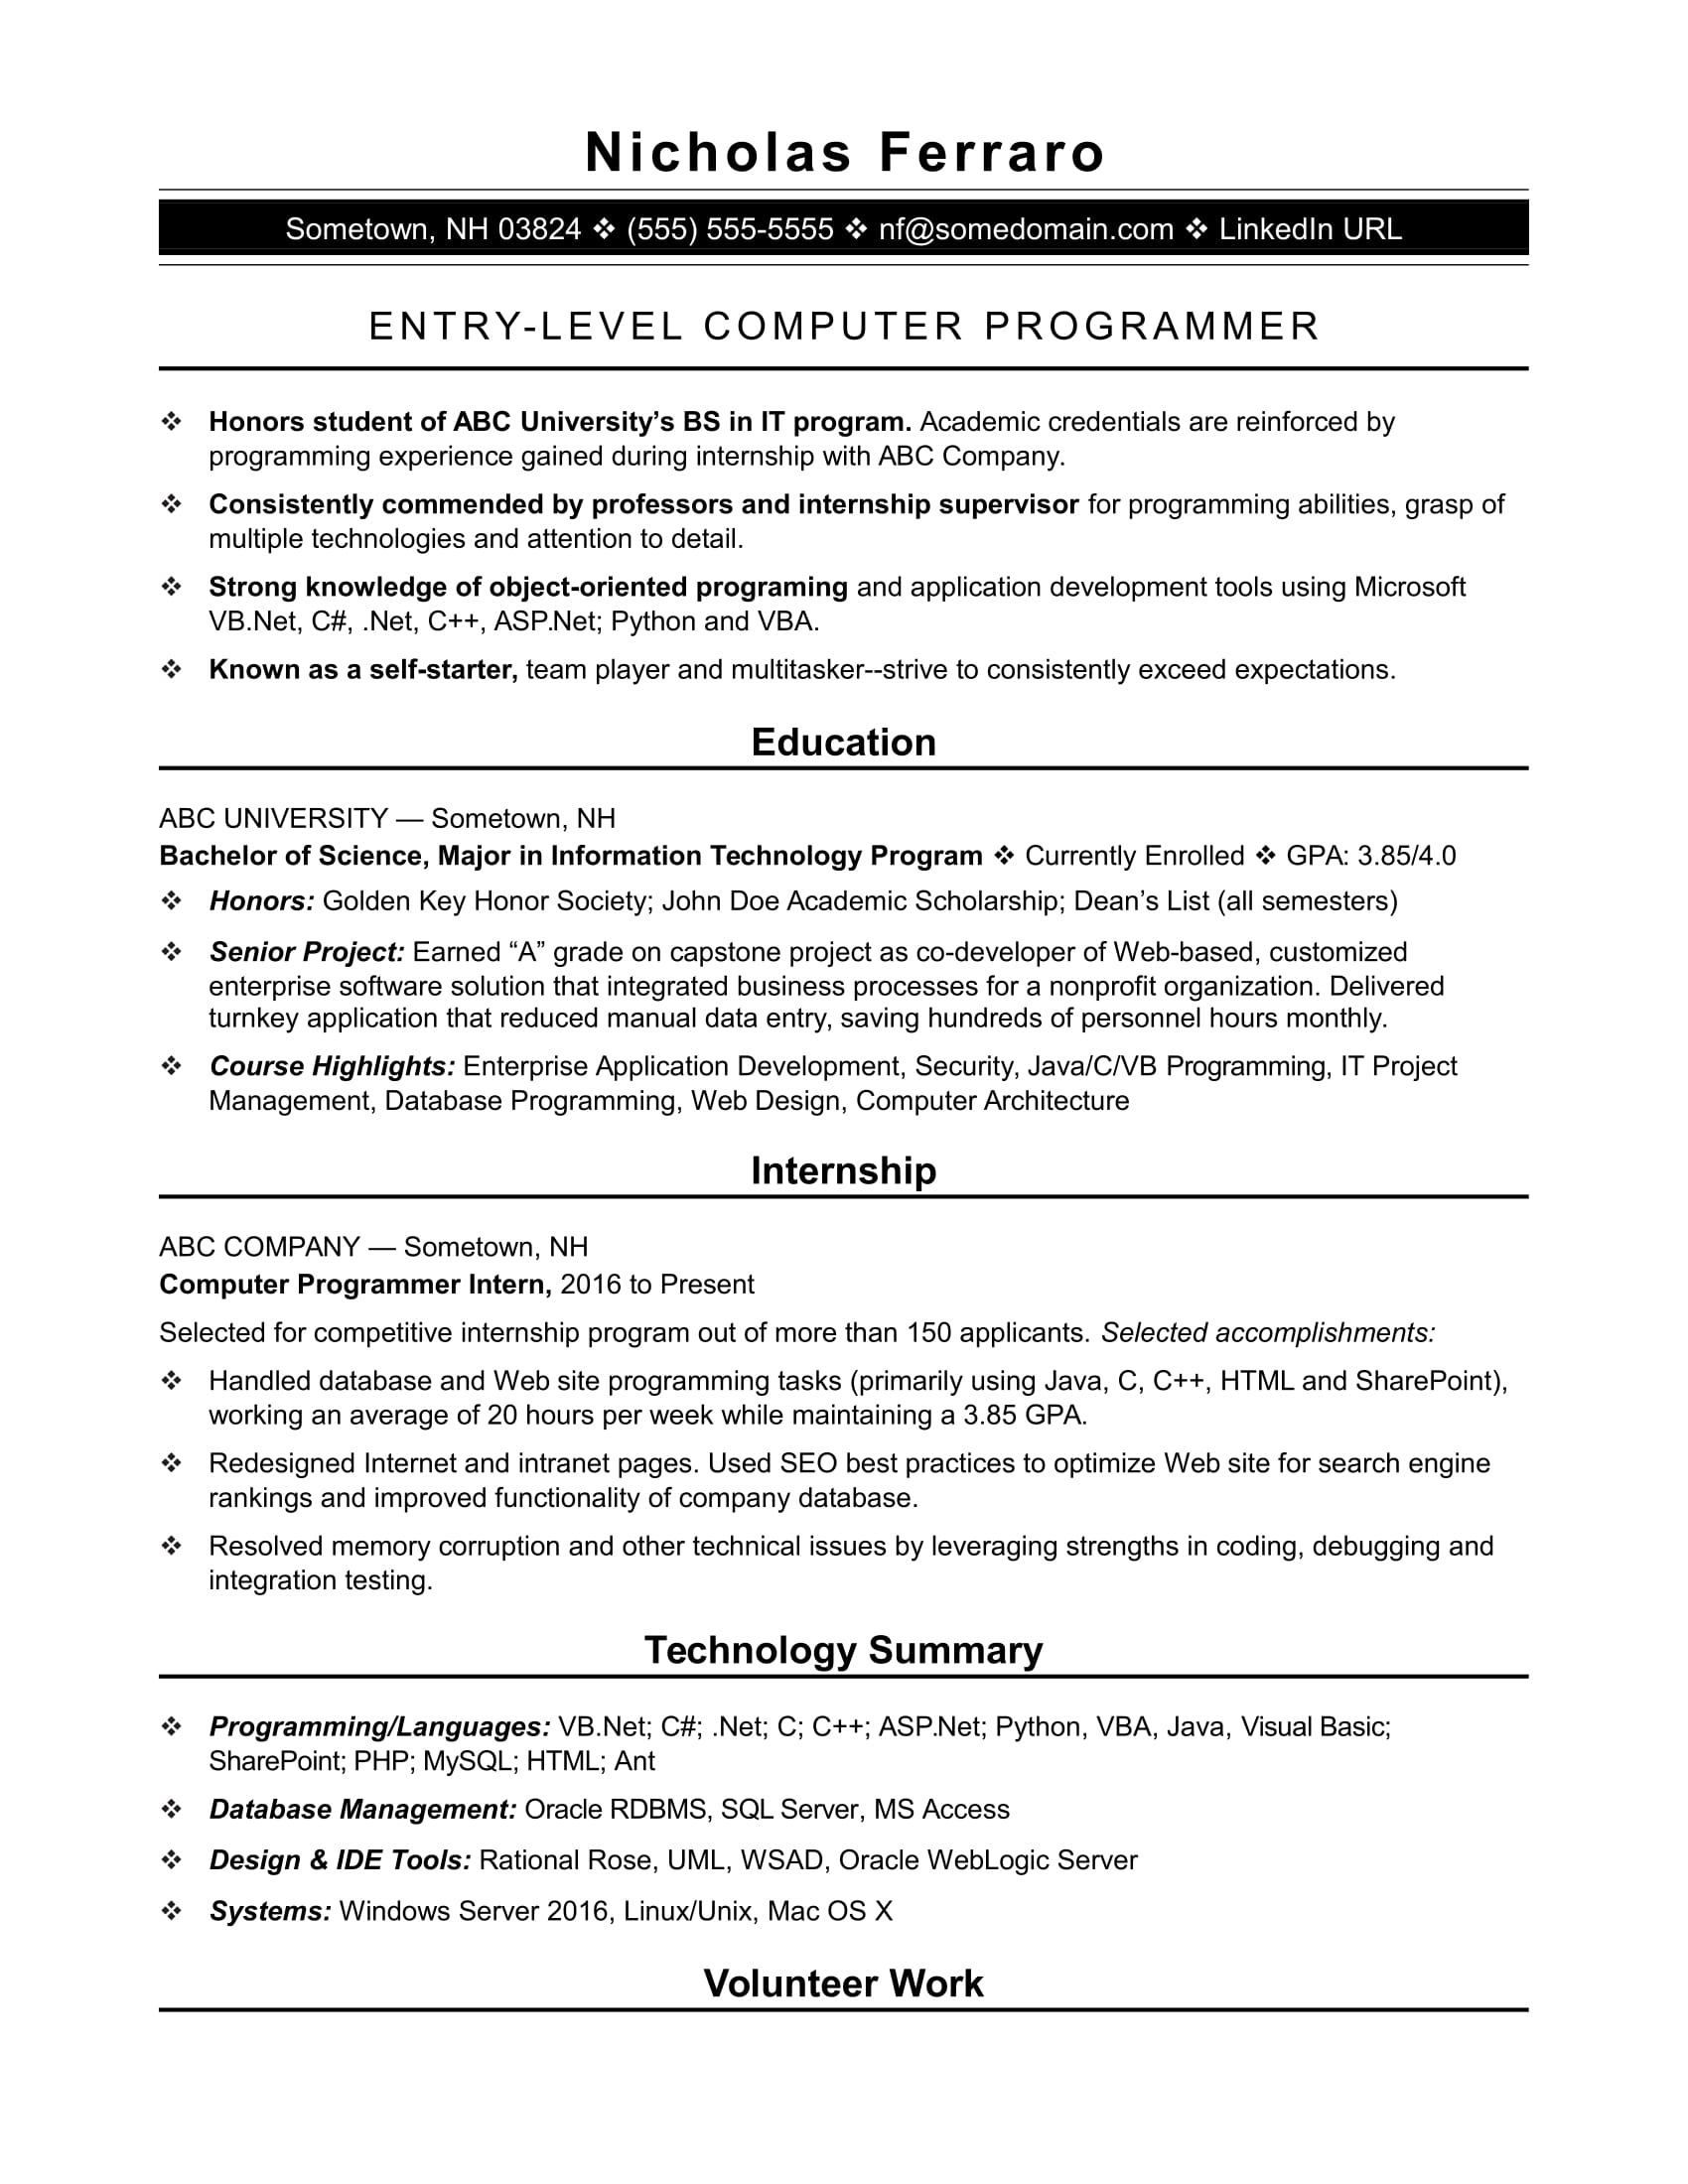 Sample Resume For An Entry-Level Computer Programmer | Monster com